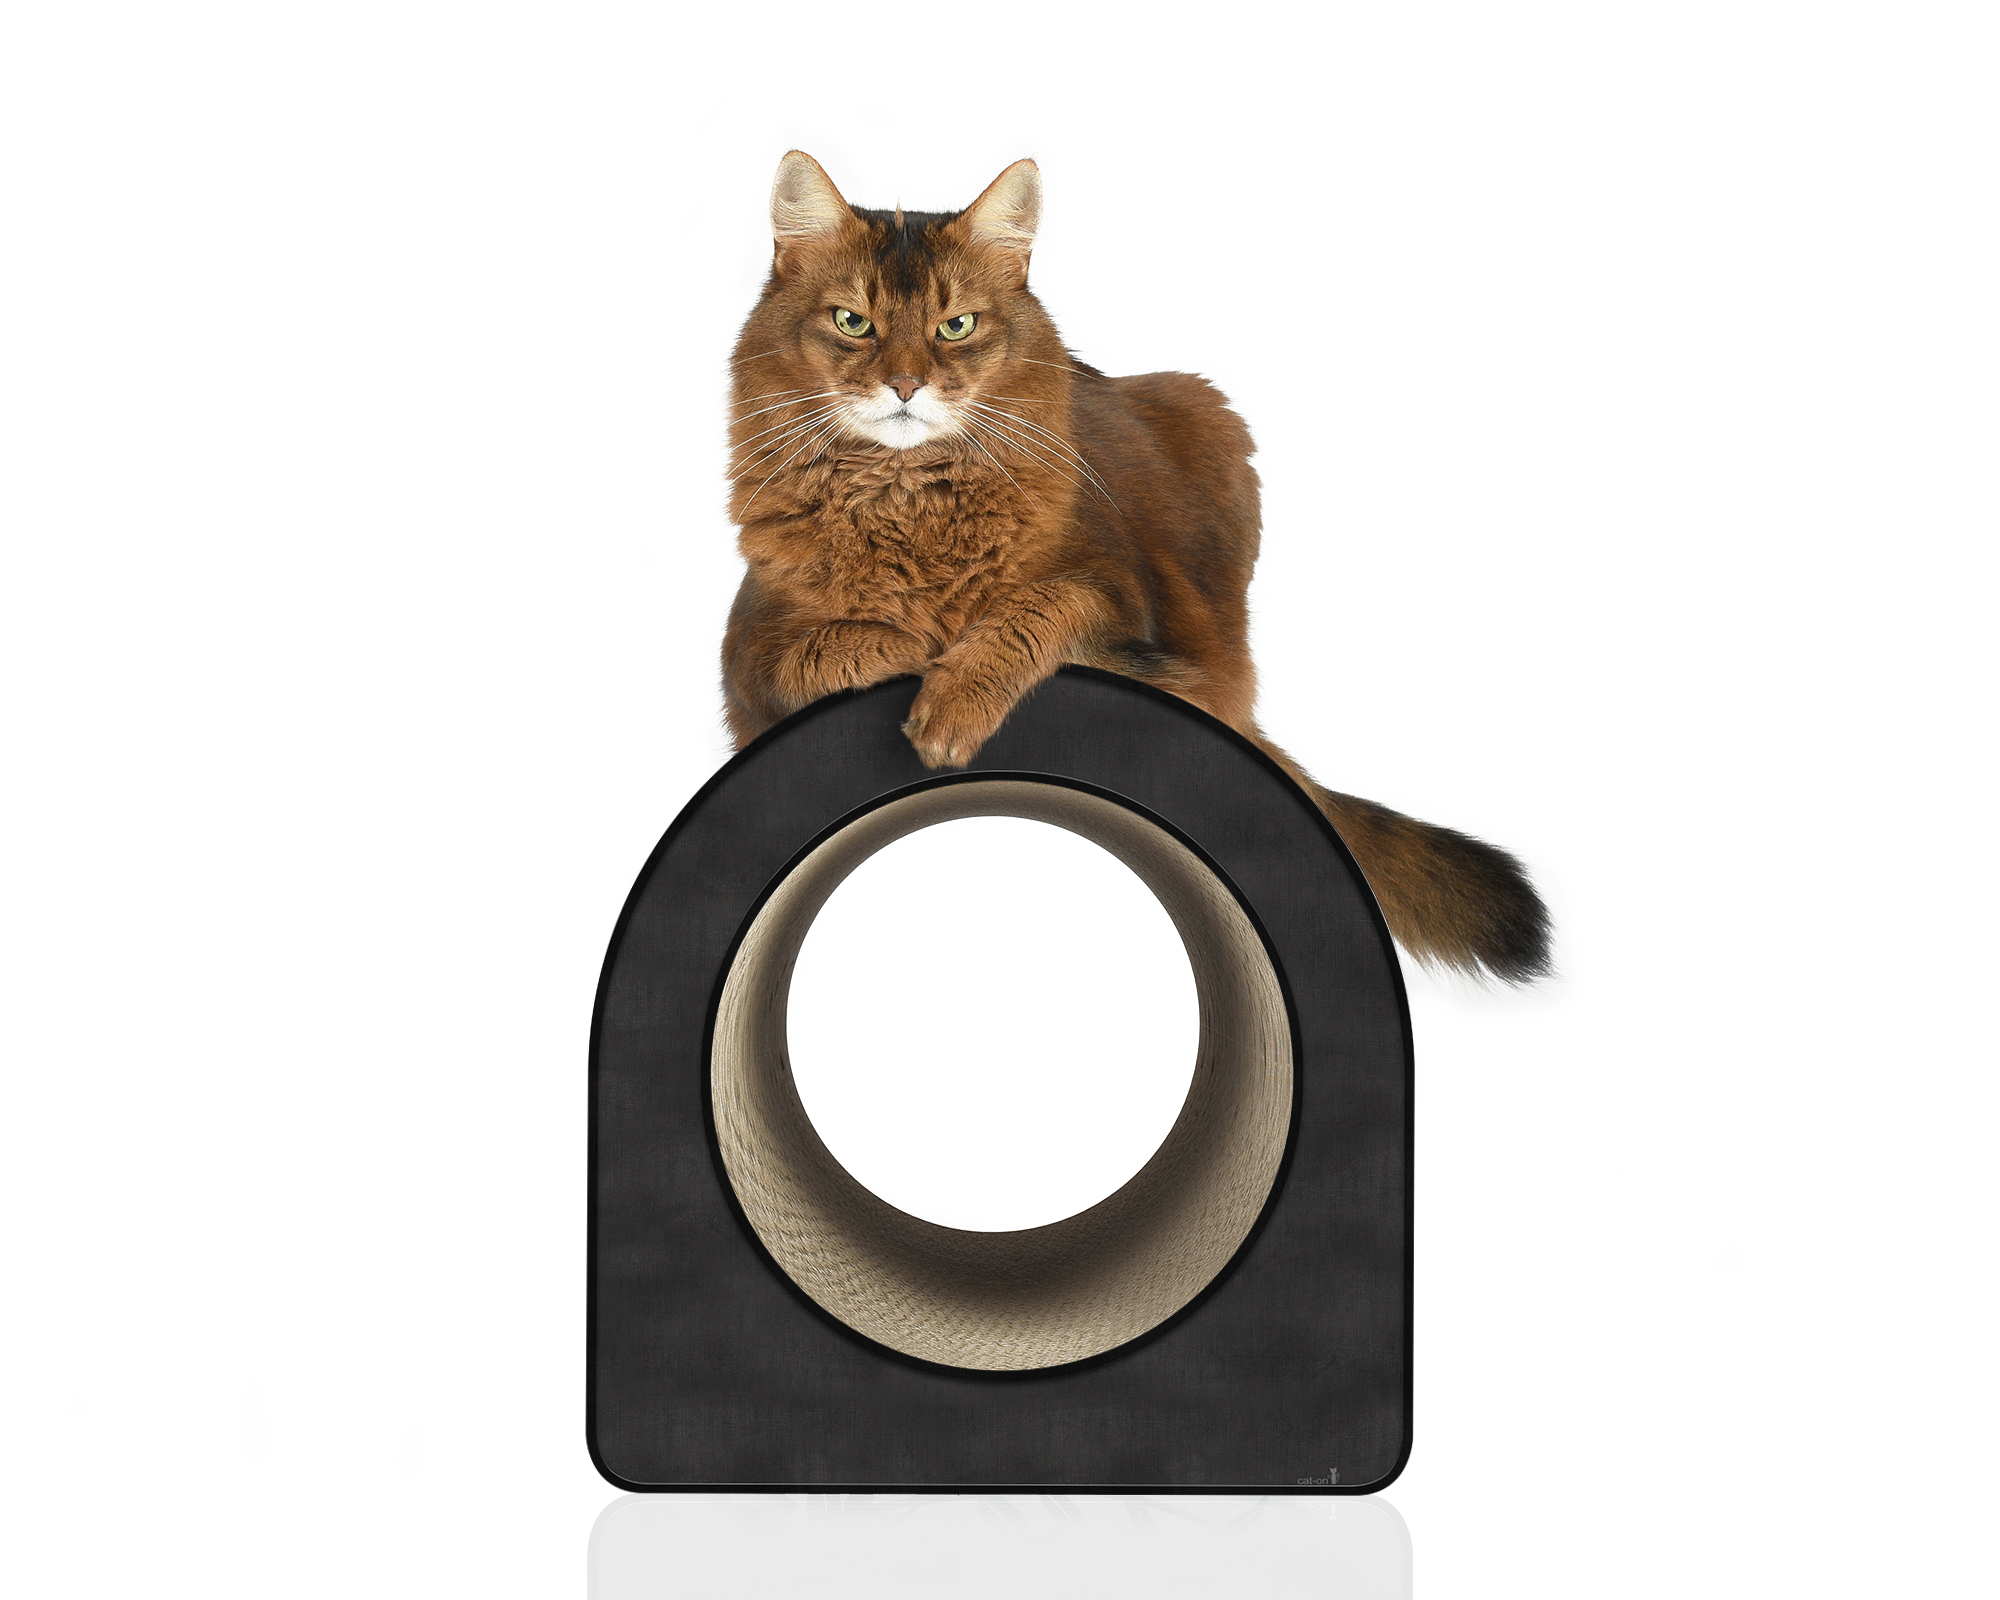 Cardboard cat scratcher Le Tube L - Made in Germany